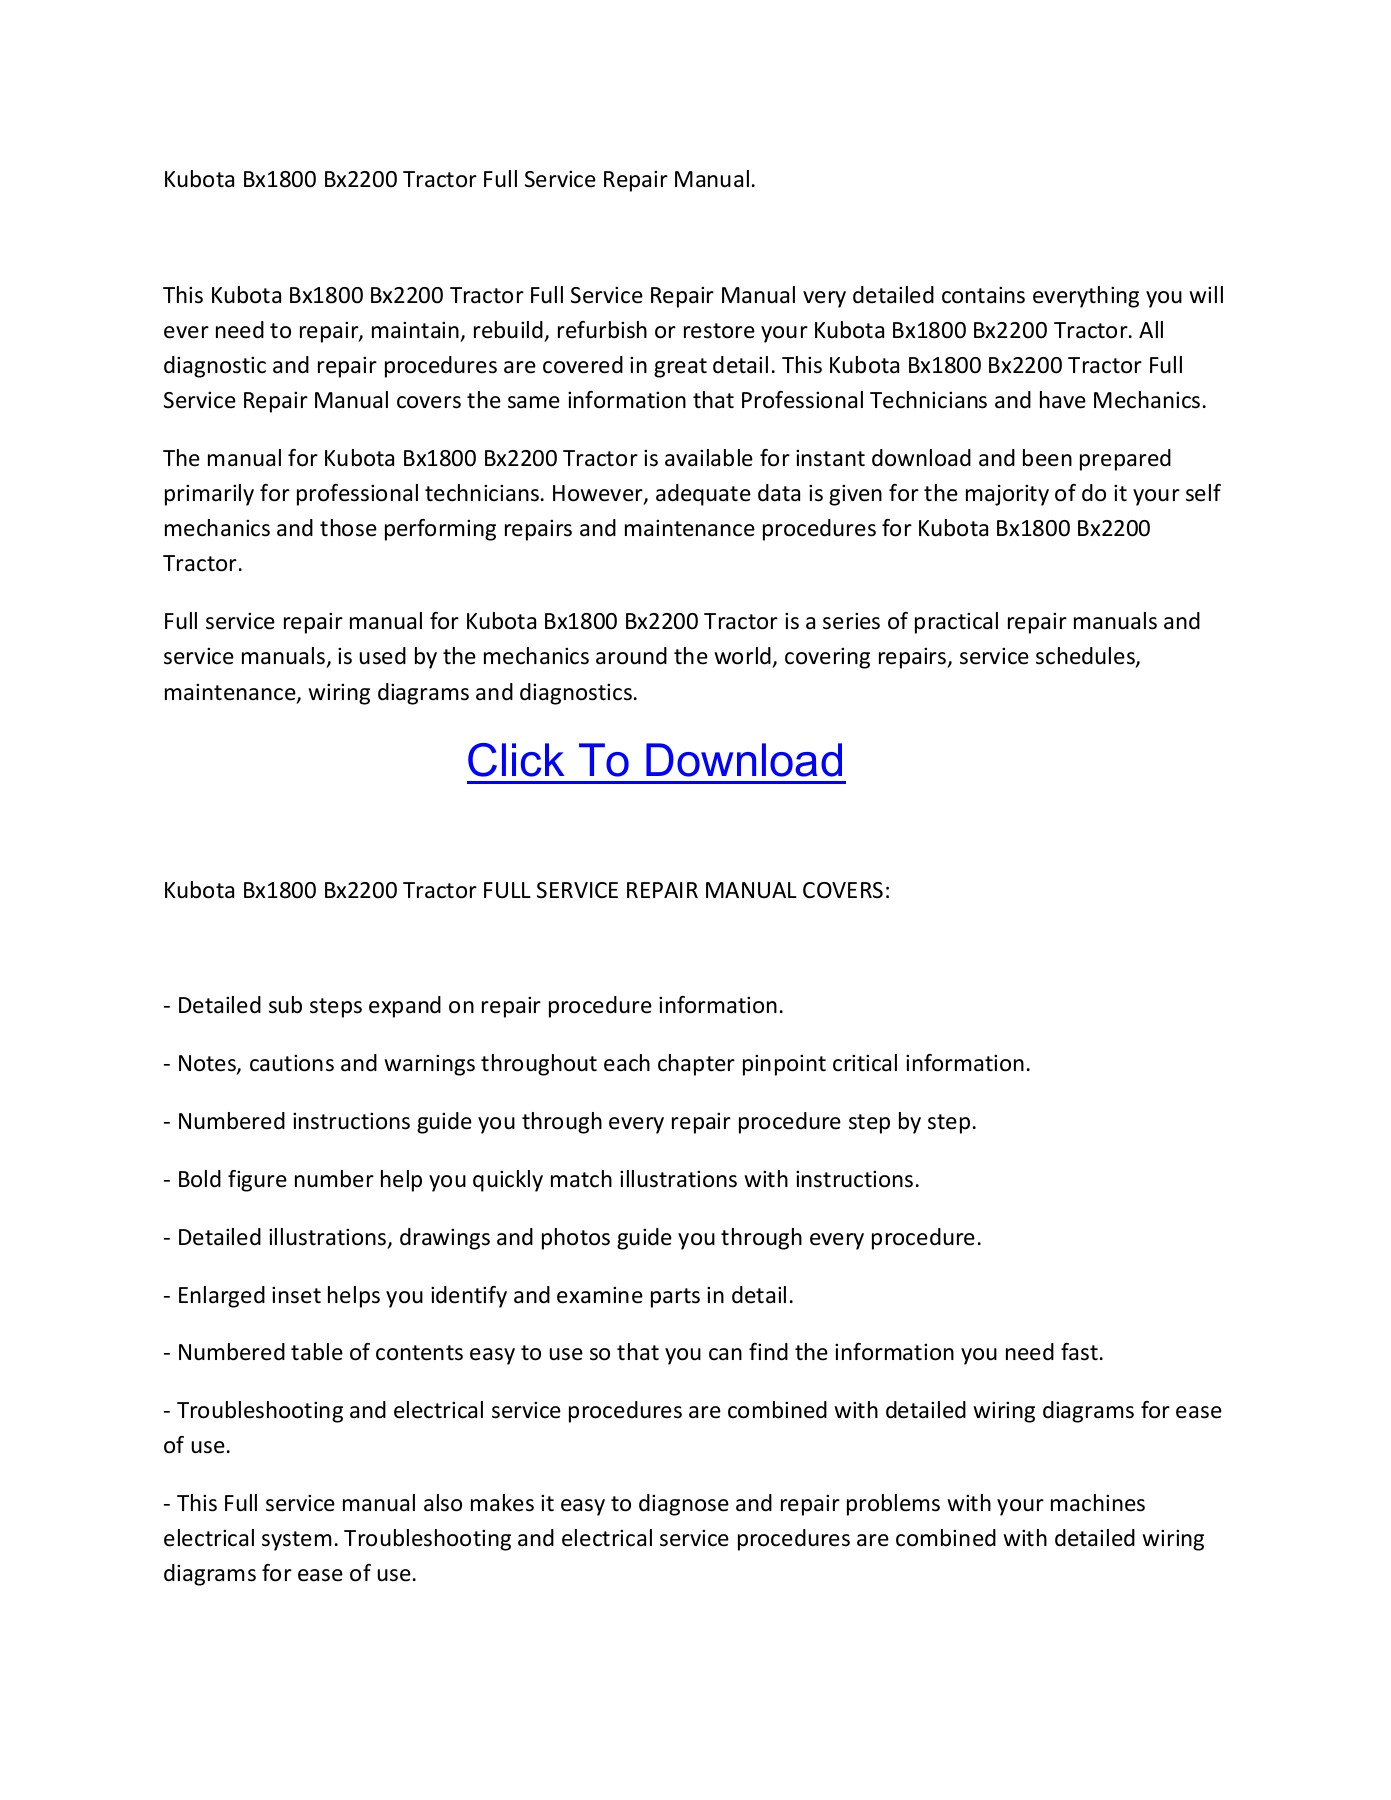 [SCHEMATICS_4UK]  Kubota Bx1800 Bx2200 Tractor Full Service Repair Manual Pages 1 - 1 - Text  Version | AnyFlip | Kubota Bx2200 Service Manual Wiring Diagram |  | AnyFlip